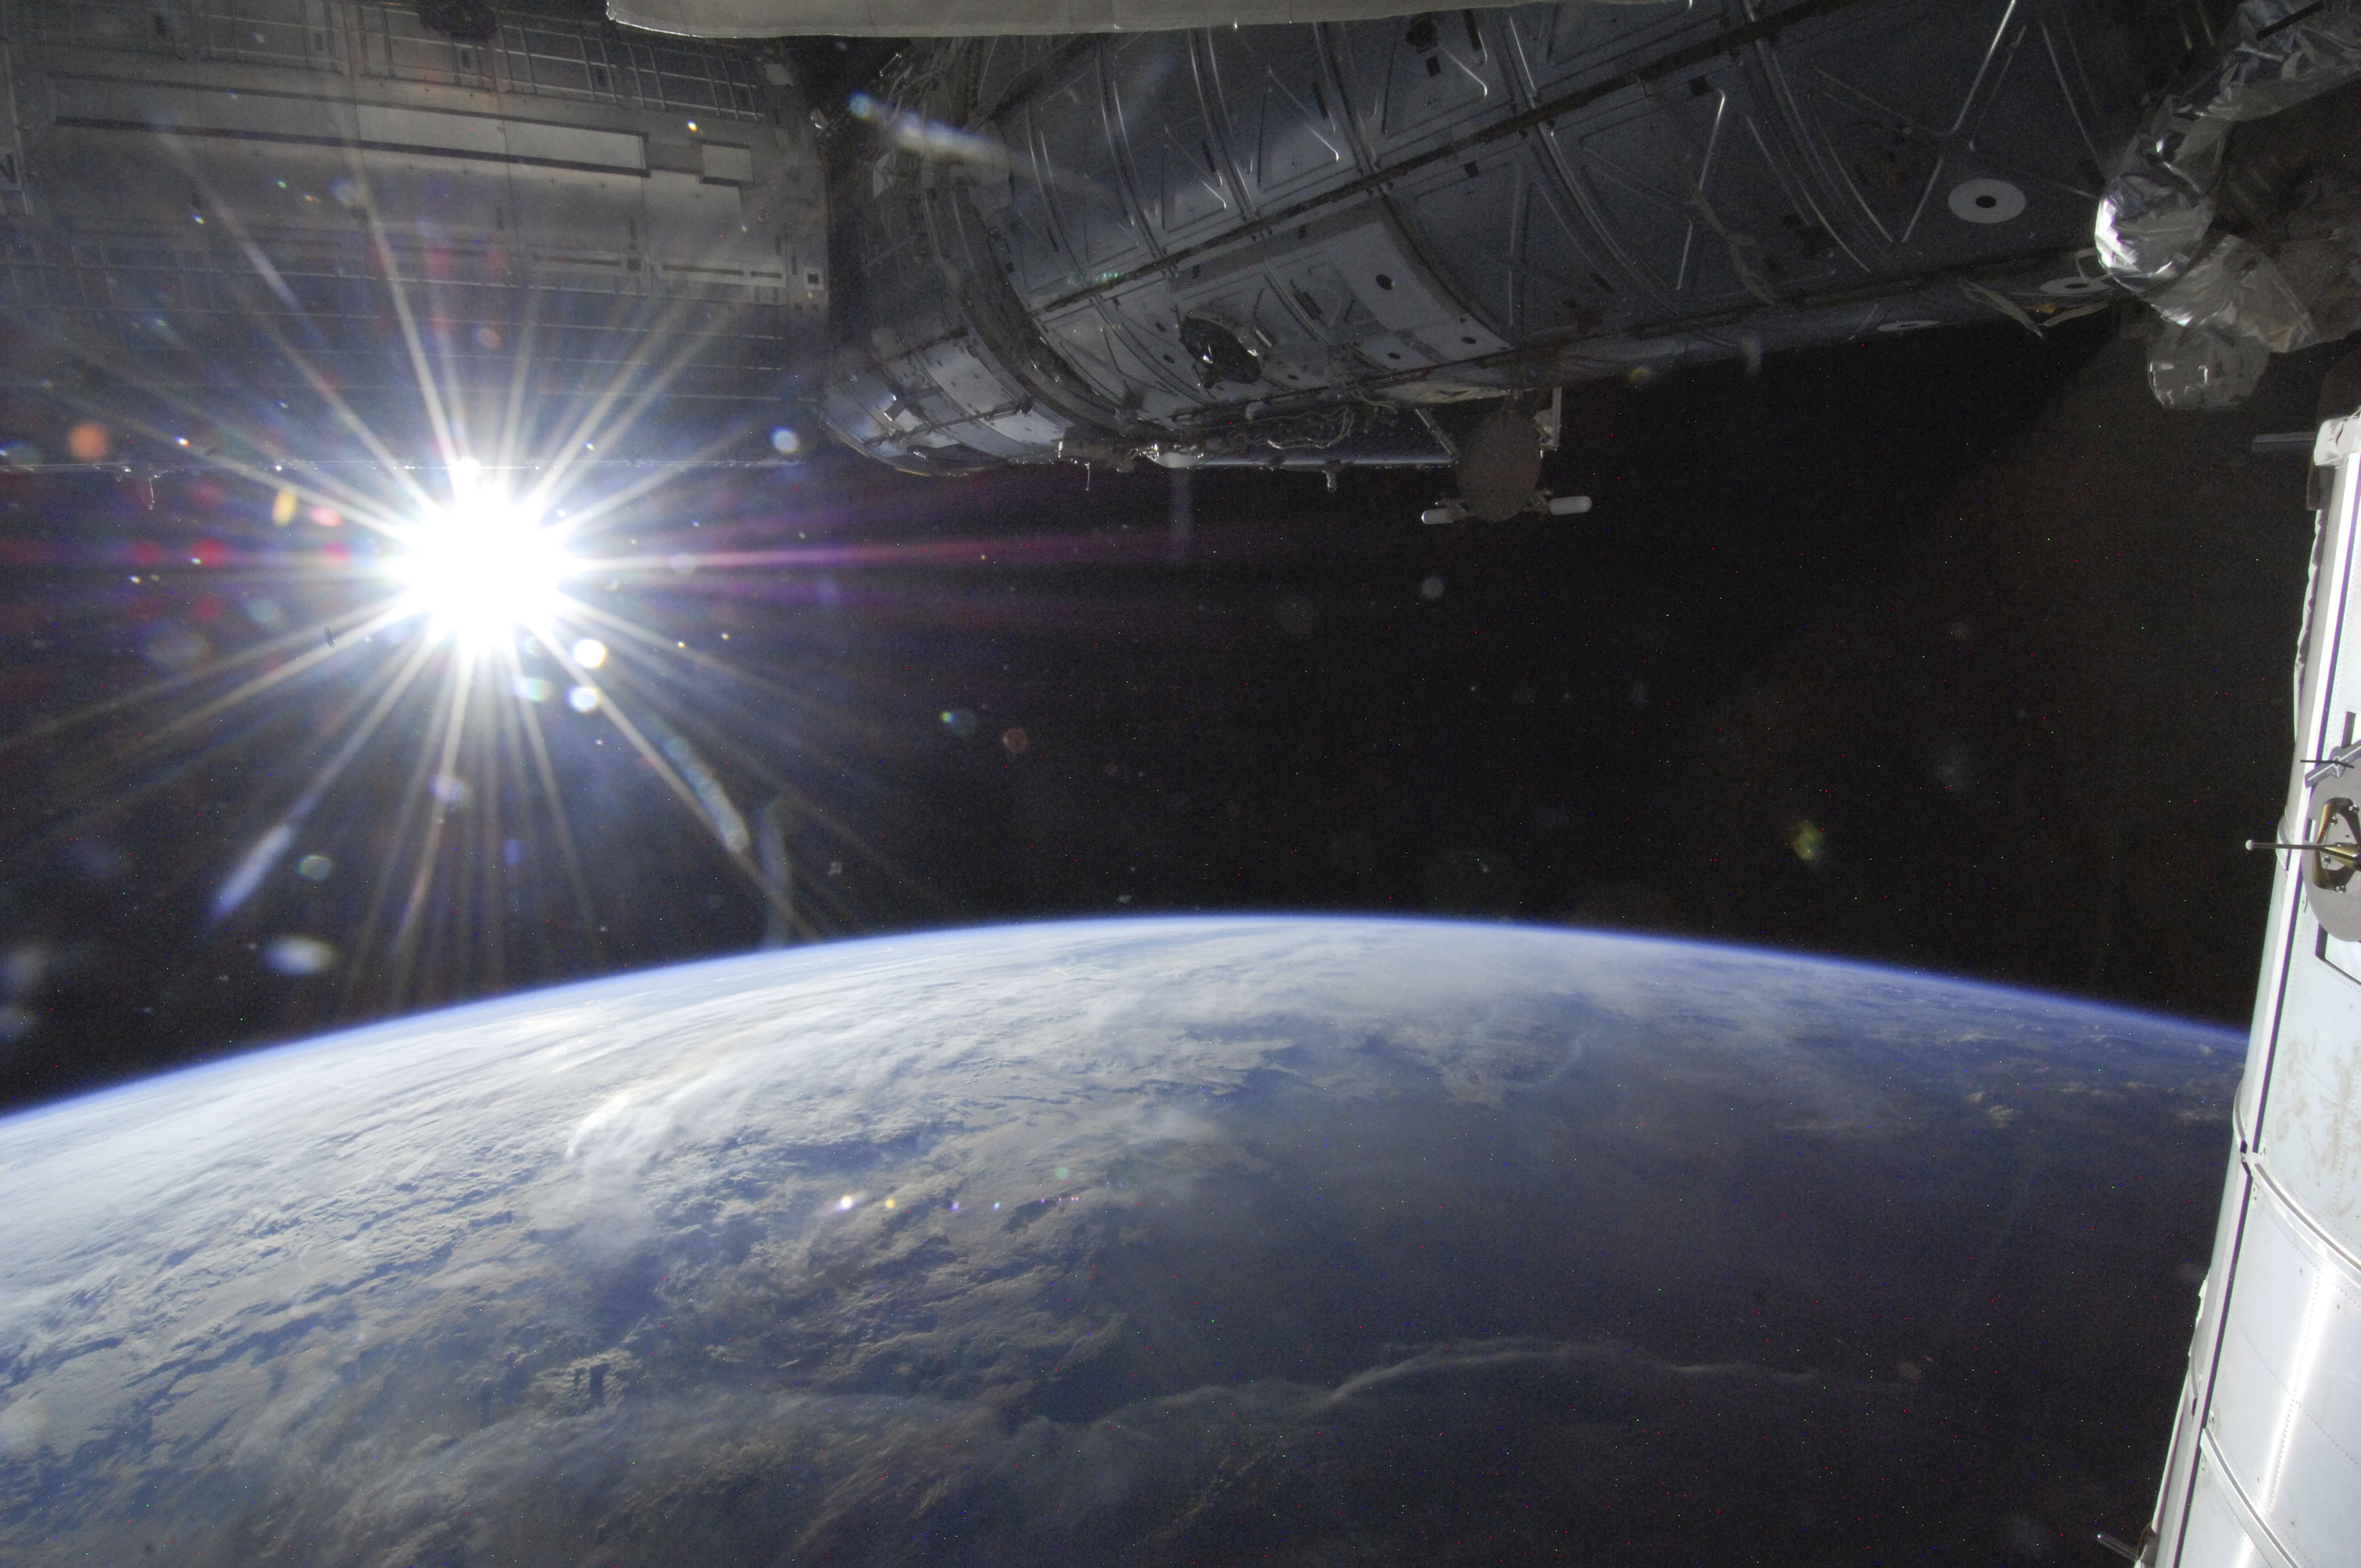 The sun is captured over Earth's horizon by one of the Expedition 36 crew members aboard the International Space Station, as the orbital outpost was above a point in southwestern Minnesota in this May 21, 2013 NASA. REUTERS/NASA/Handout